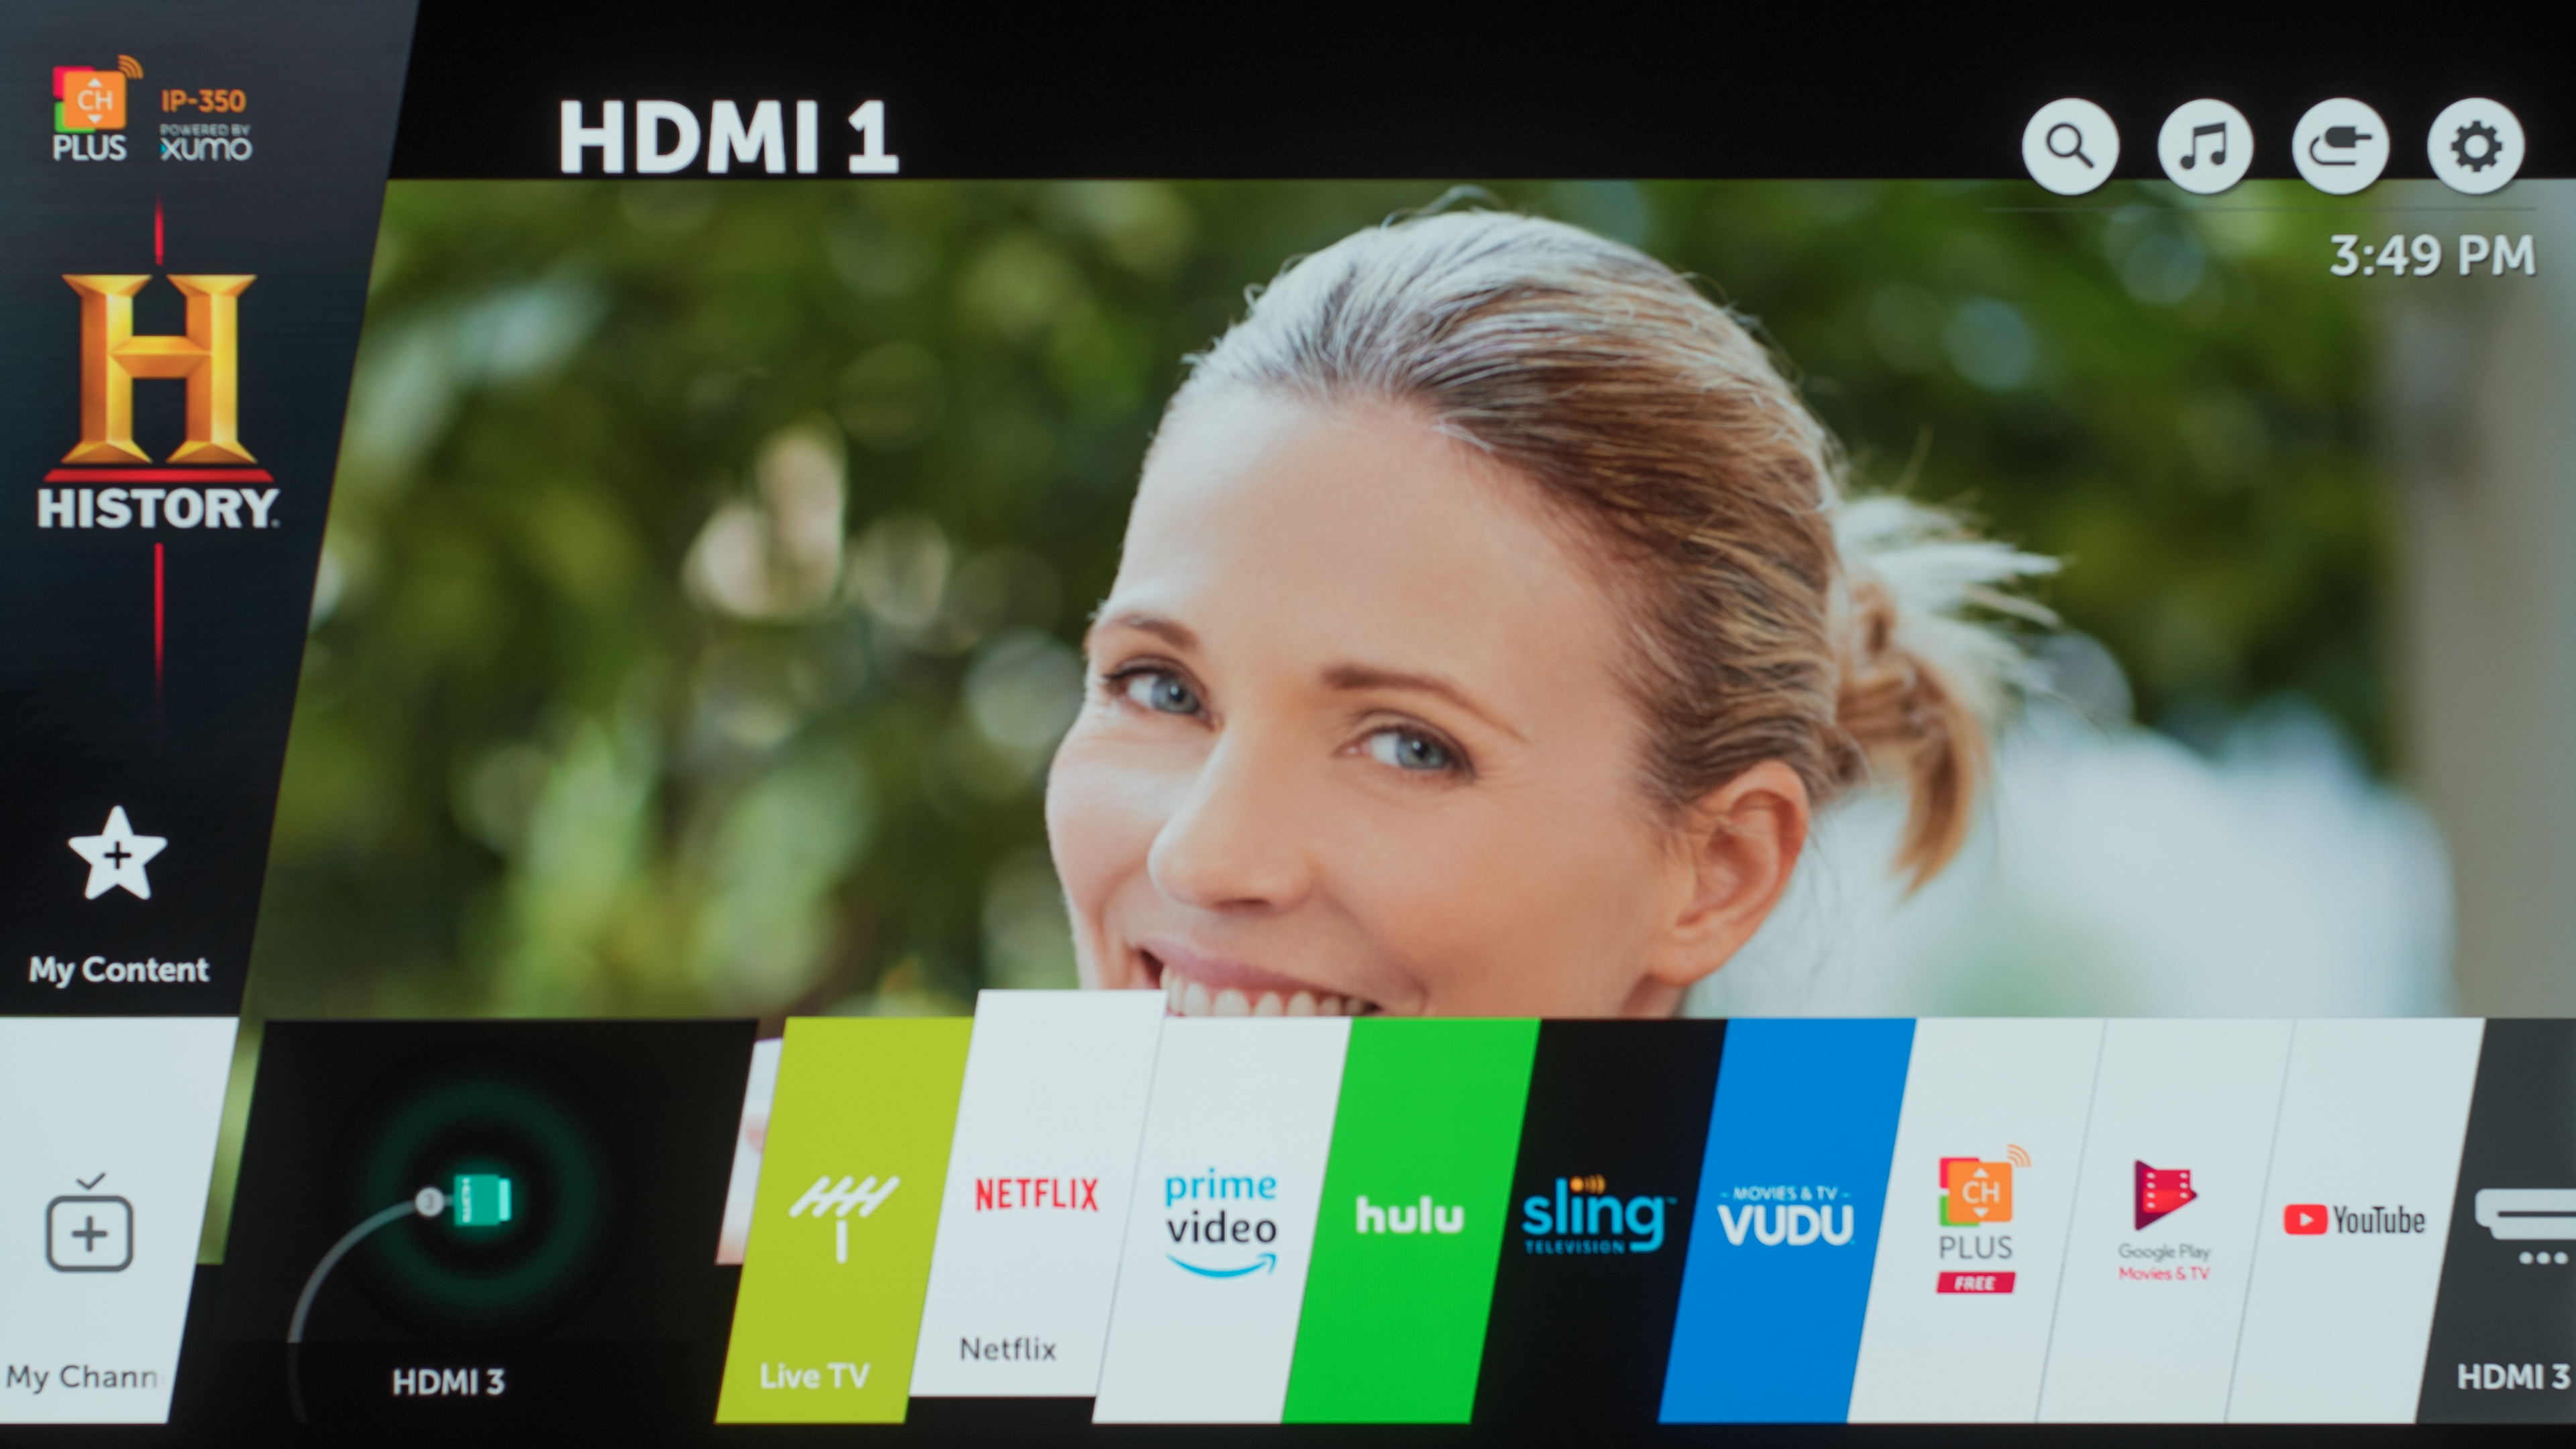 The 7 Best Smart TVs For Streaming - Summer 2019: Reviews - RTINGS com